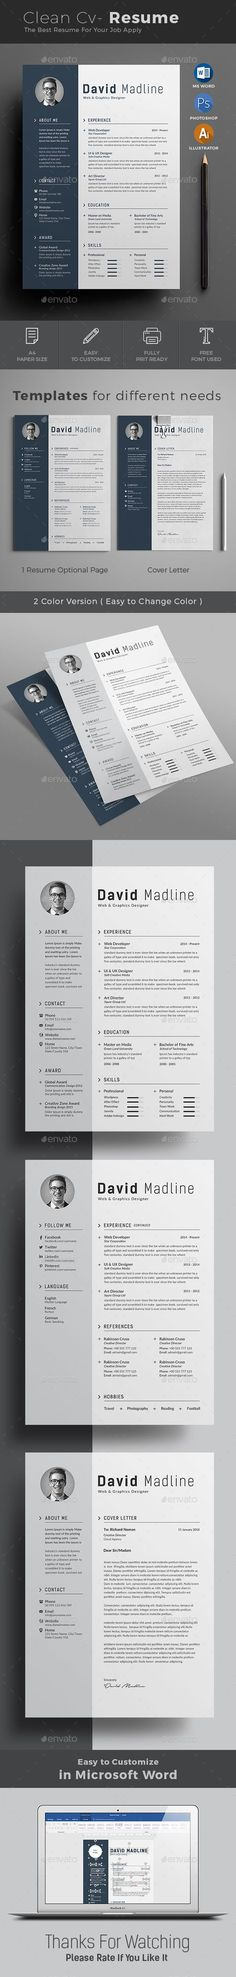 Resume template for MS Word - Resumes - 1 DIY Pinterest Cv - word resumes